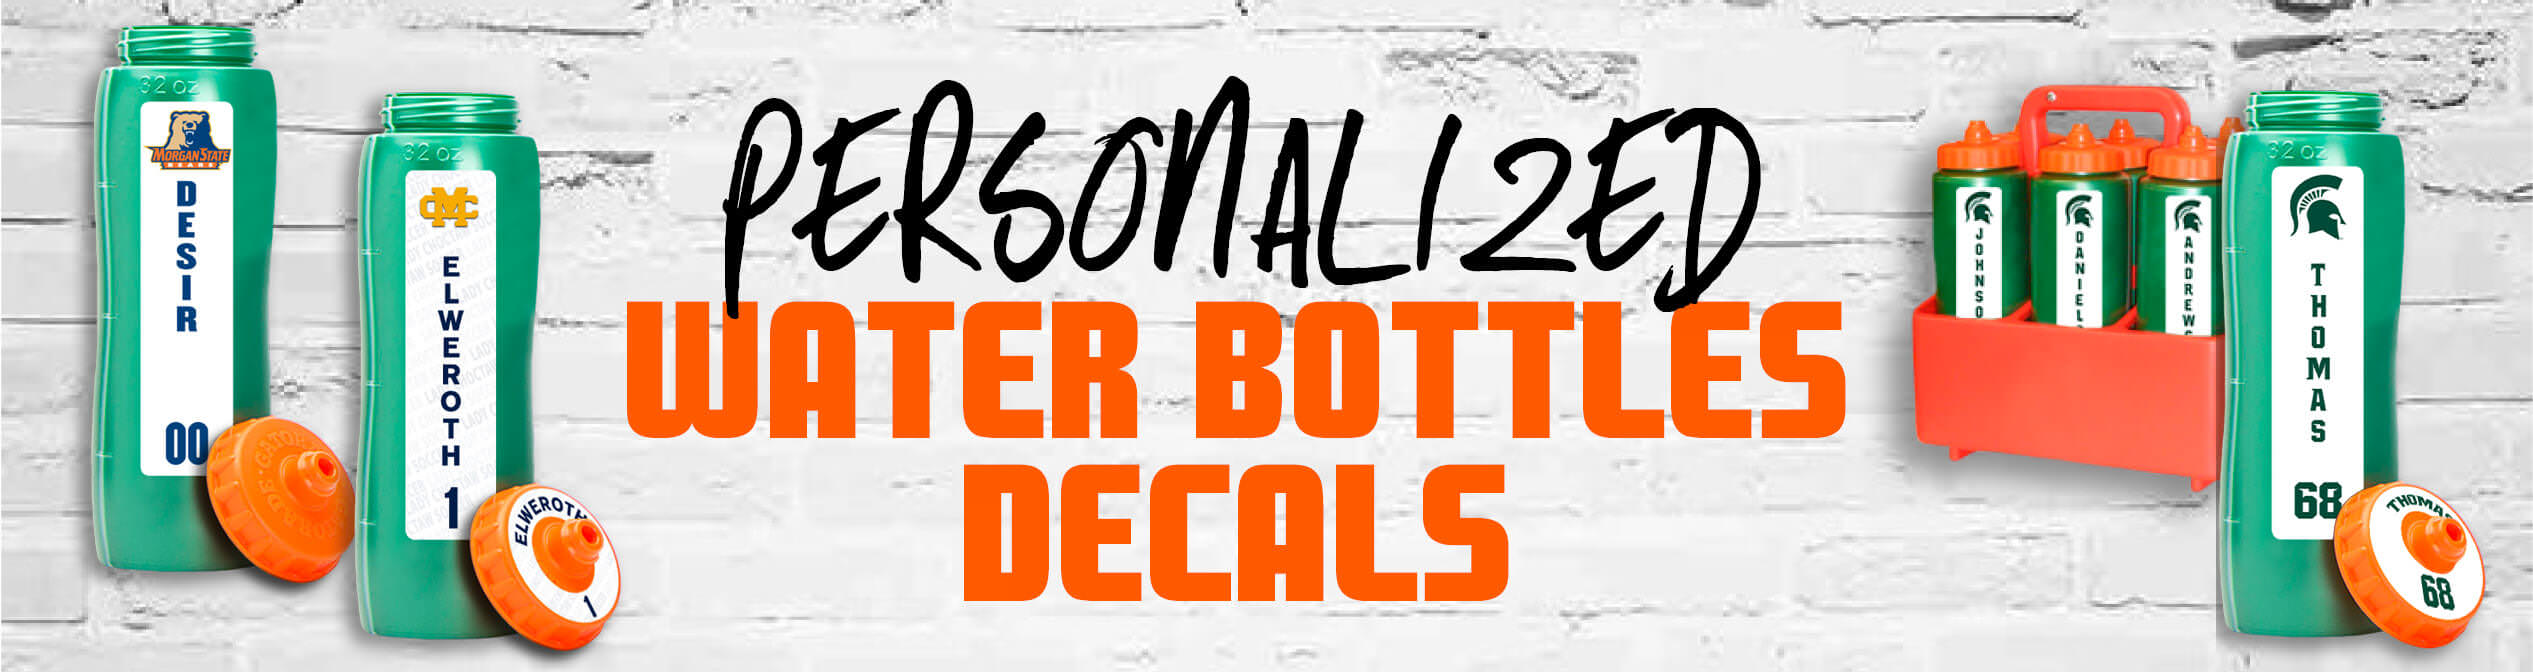 click here for personalized water bottle decals